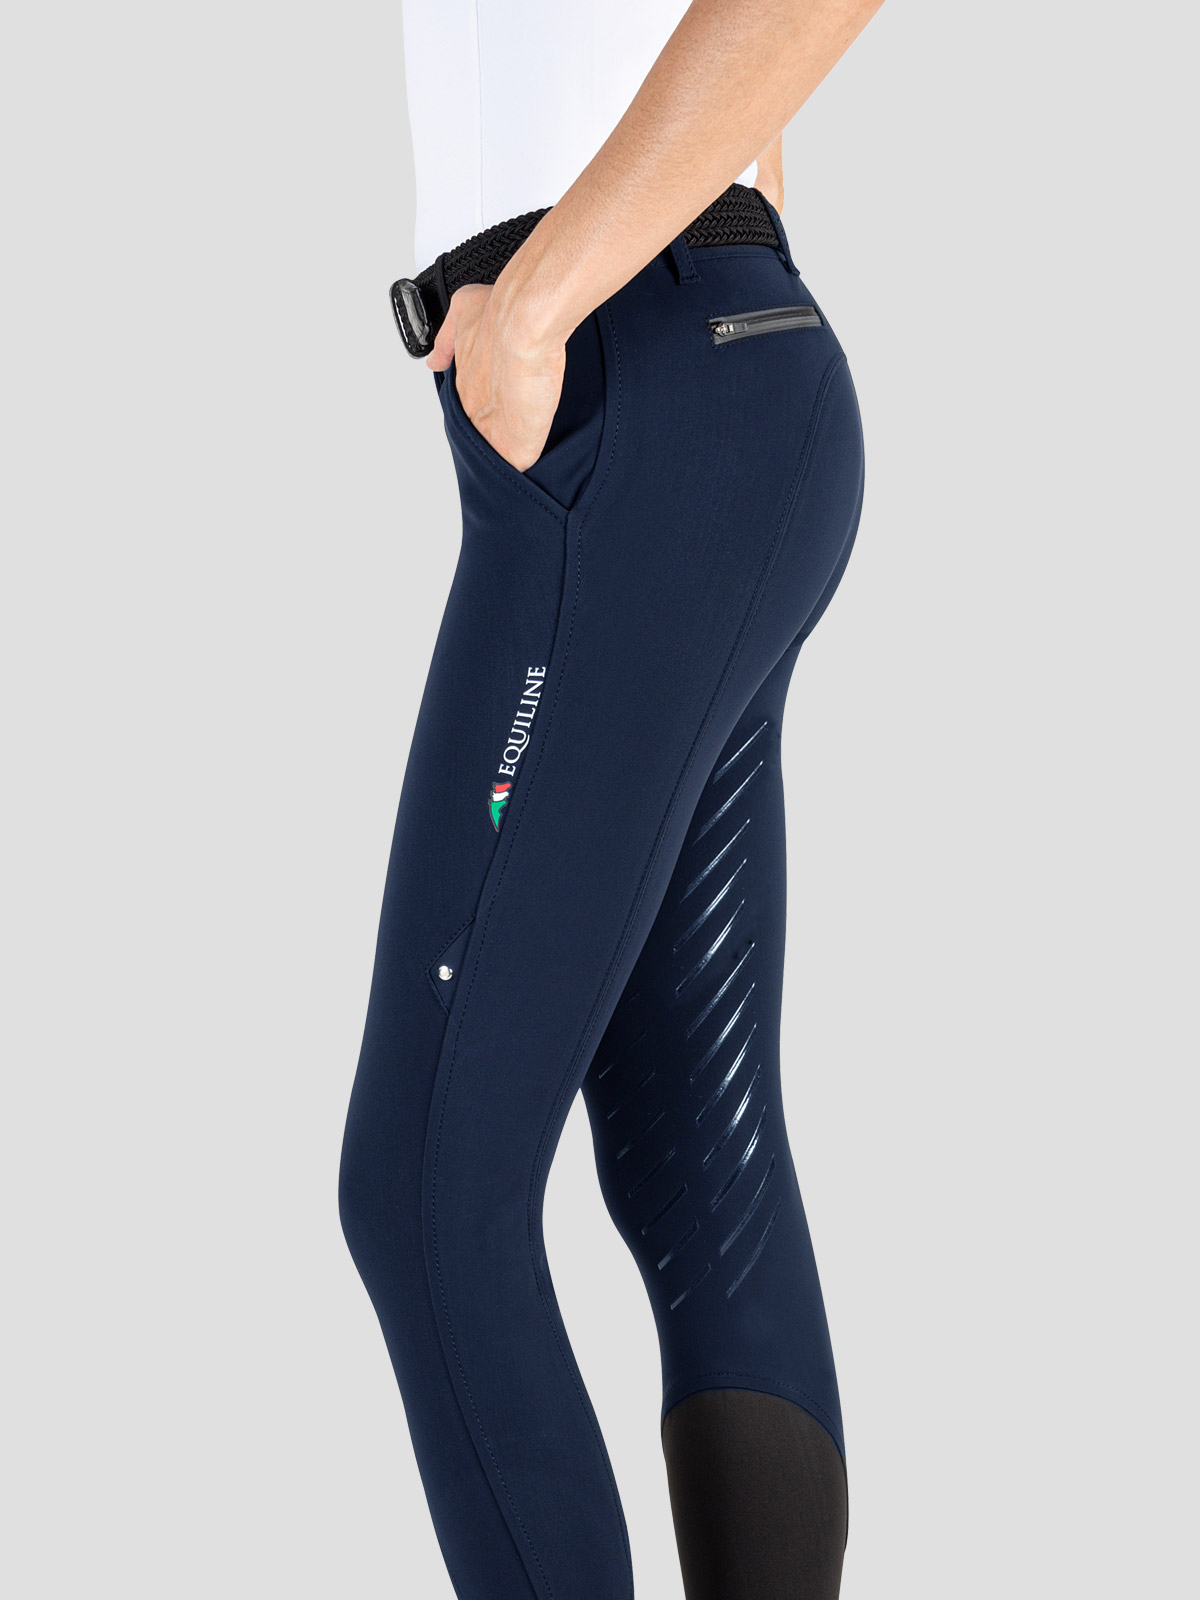 TEAM COLLECTION - WOMEN'S FULL SEAT BREECHES IN B-MOVE 2